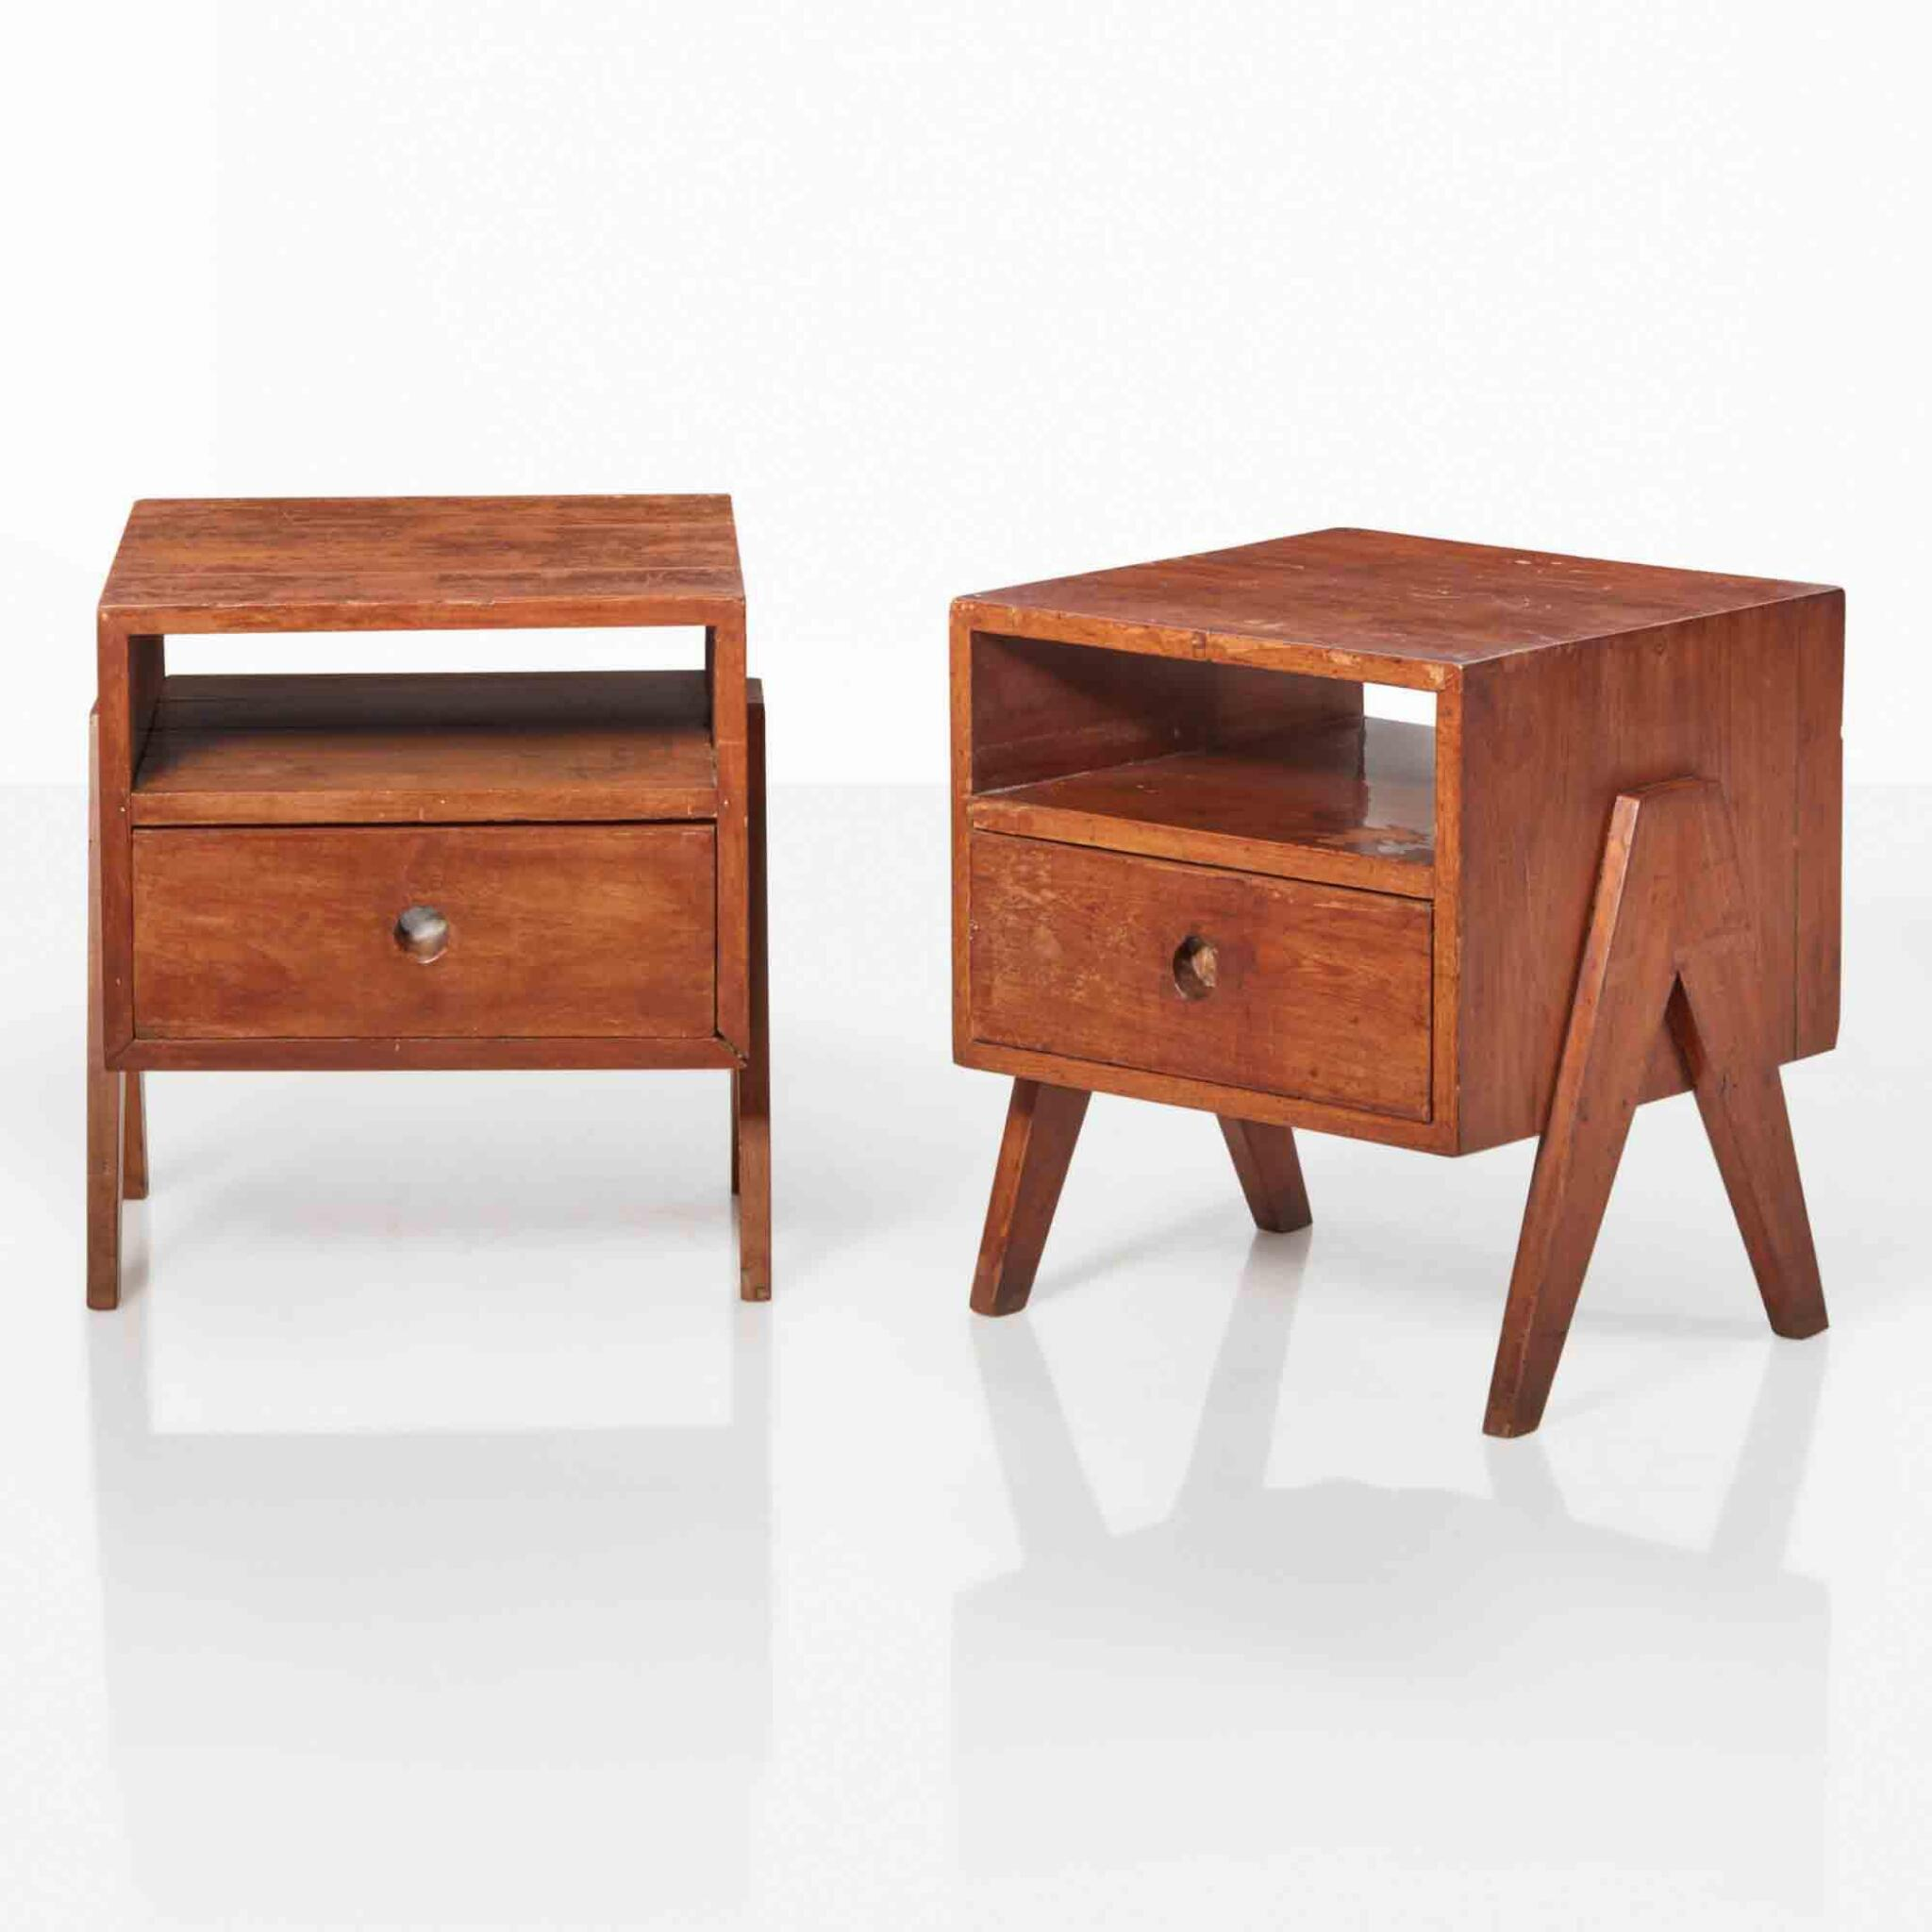 View full screen - View 1 of Lot 87. Pair of Bedside Tables, Model No. PJ-R-09-A.